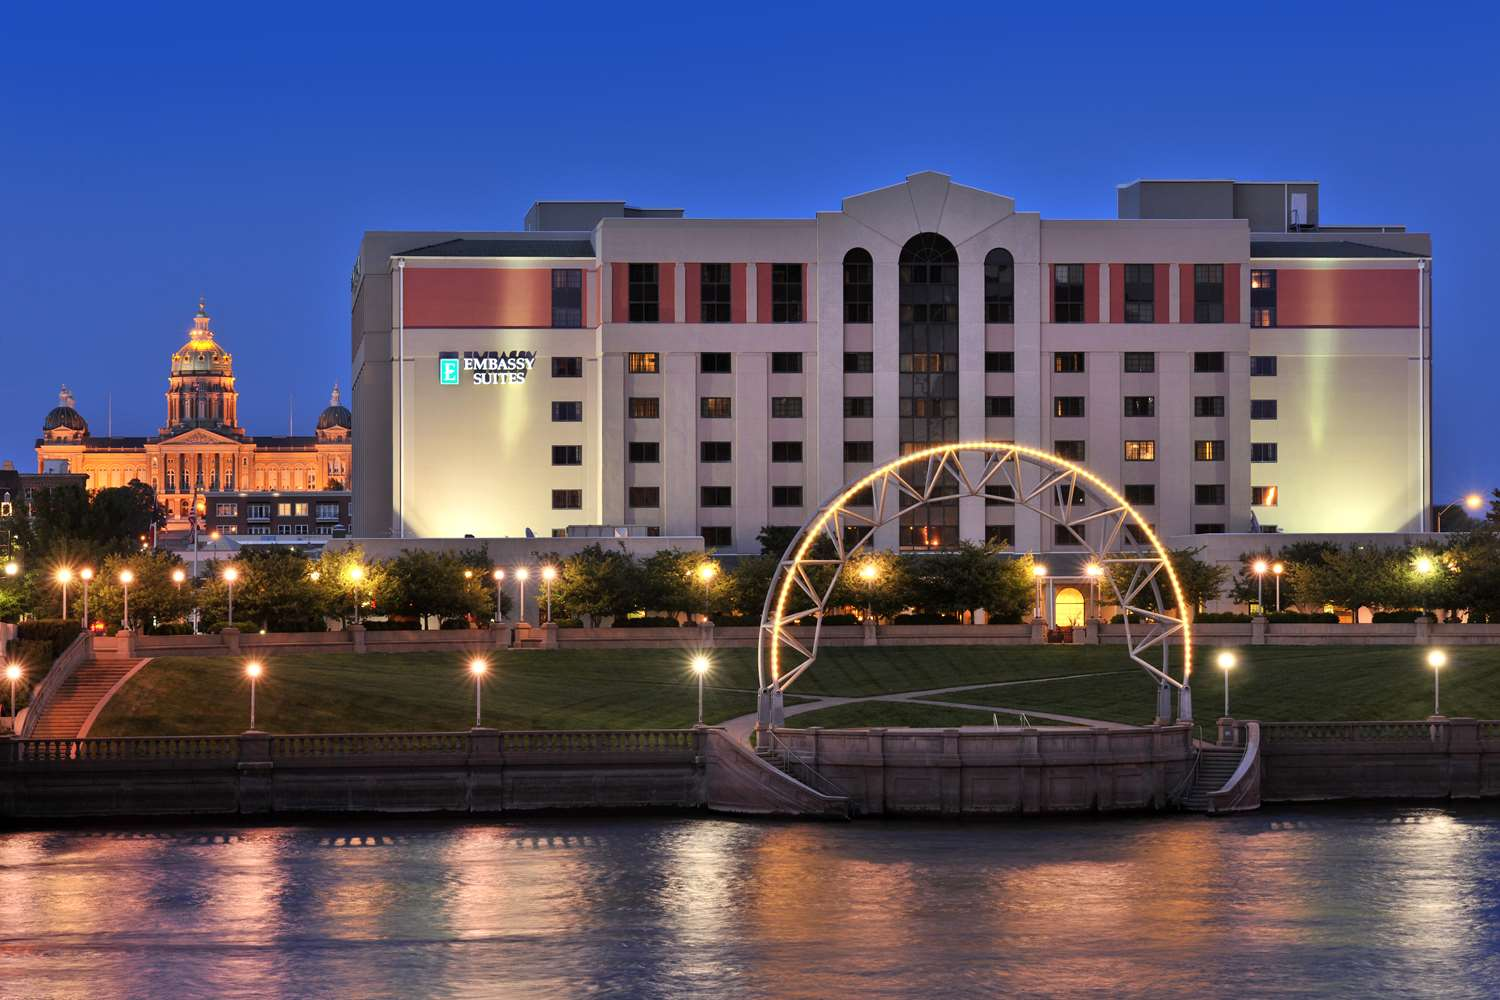 Embassy Suites on the River Des Moines